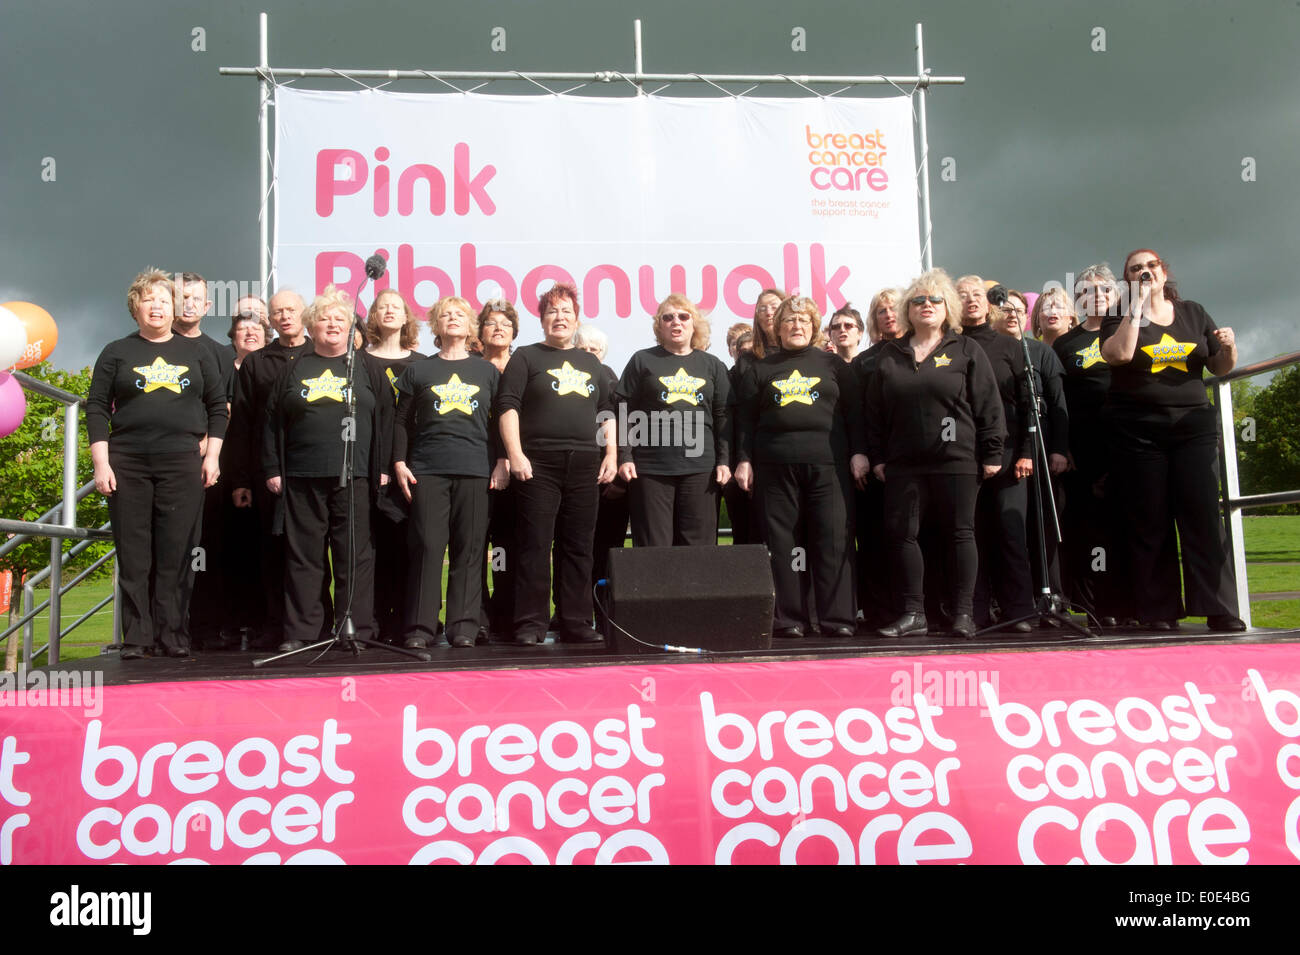 the 10th Pink Ribbon walk at Blenheim Palace, - Stock Image